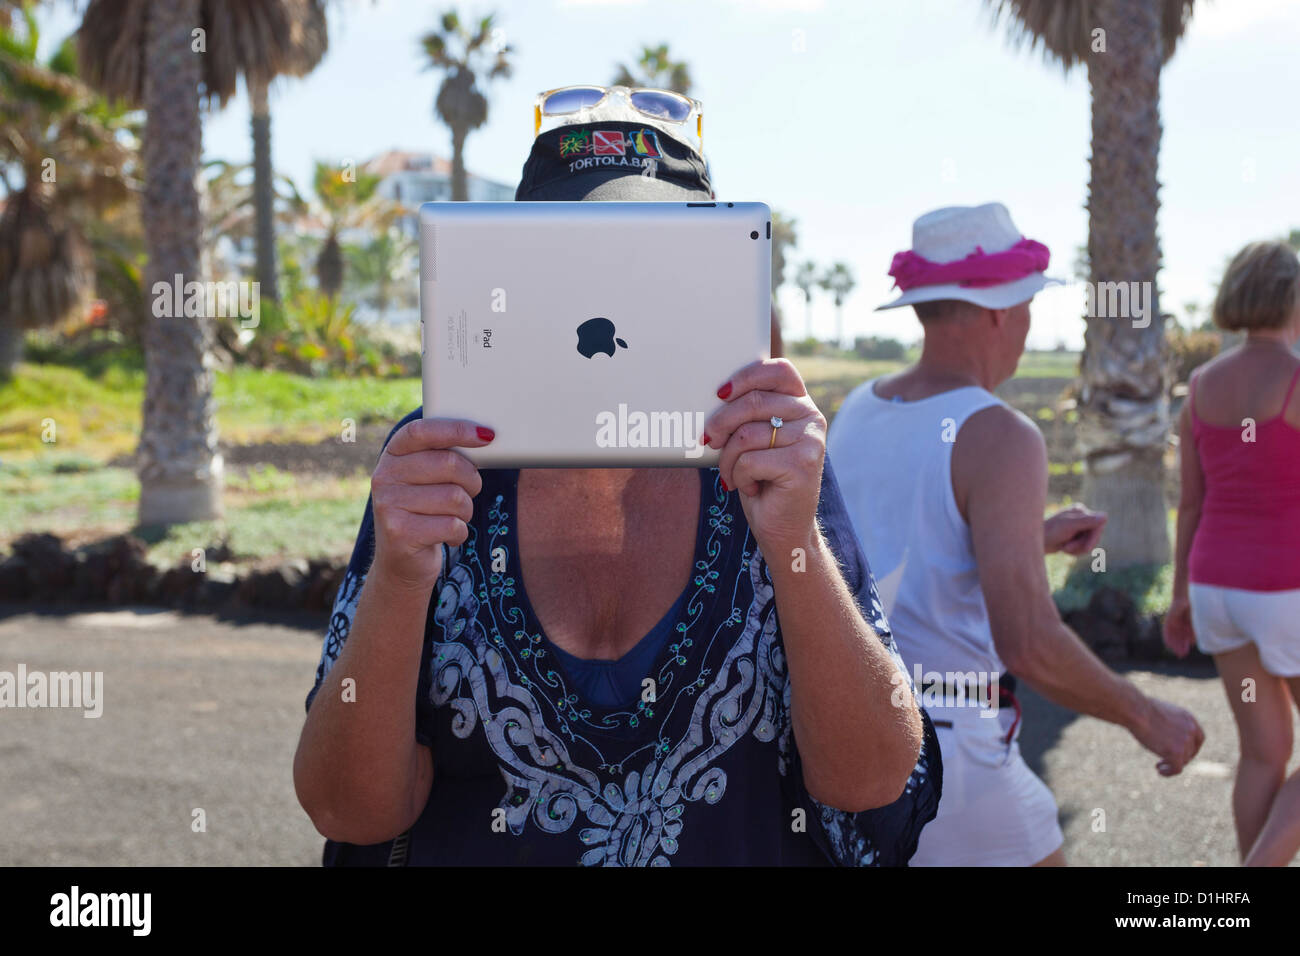 Lady filming with iPad. - Stock Image